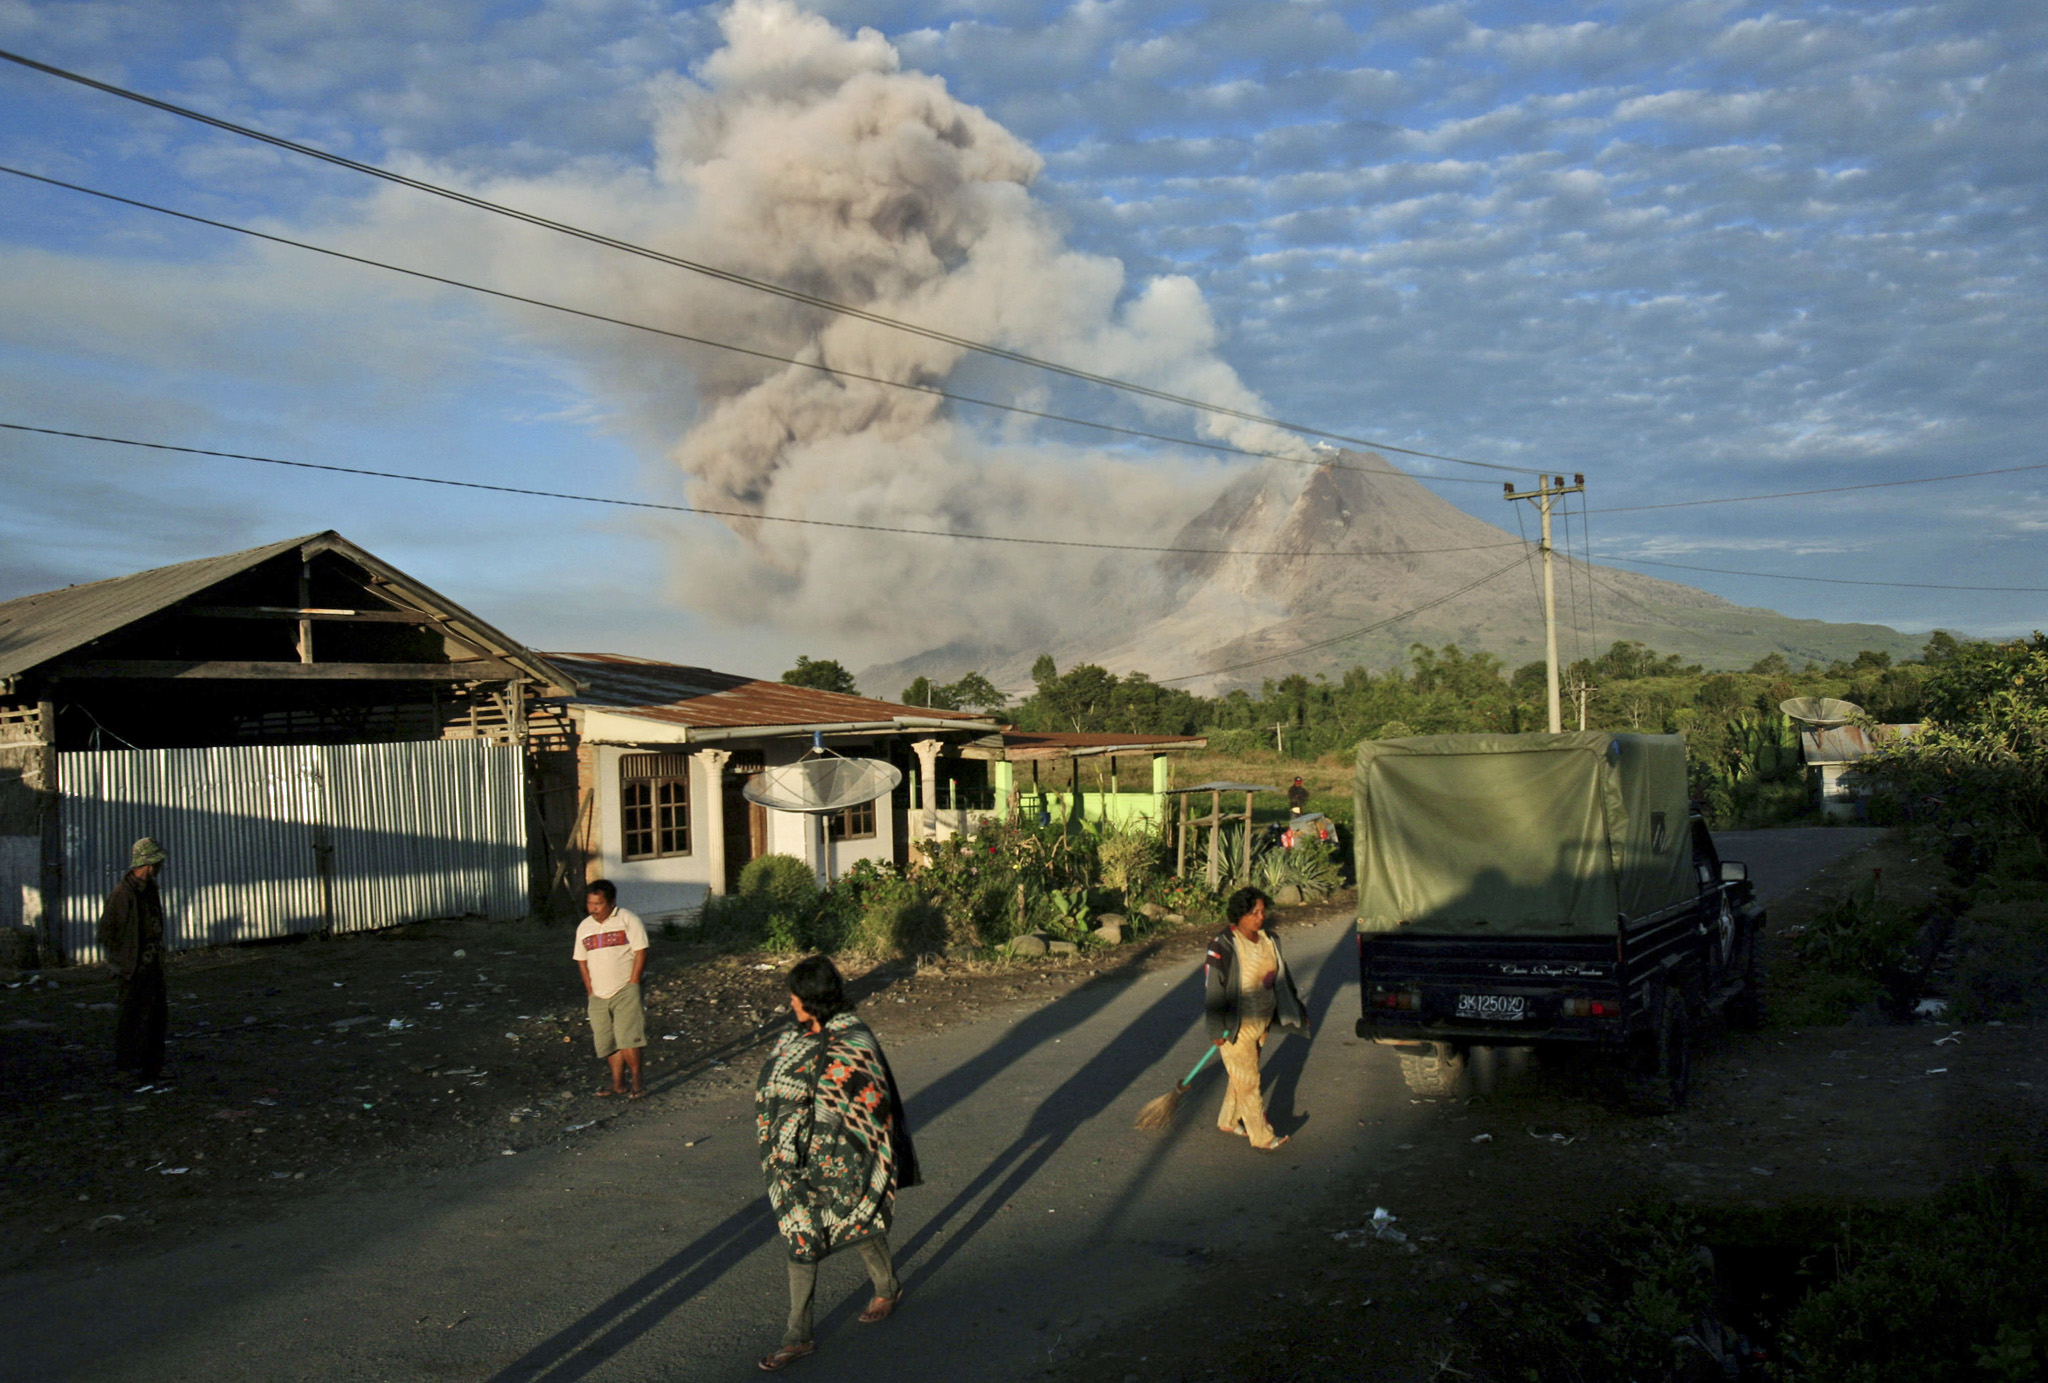 Villagers start their morning routine as Mount Sinabung releases volcanic materials into the air in Perteguhan, North Sumatra, Indonesia, Monday, Jan. 6, 2014. The 2,600-meter (8,530-foot) volcano has sporadically erupted since September. Authorities extended a danger zone around a rumbling volcano in western Indonesia on Sunday after it spewed blistering gas farther than expected, sending panicked residents streaming down the sides of the mountain.